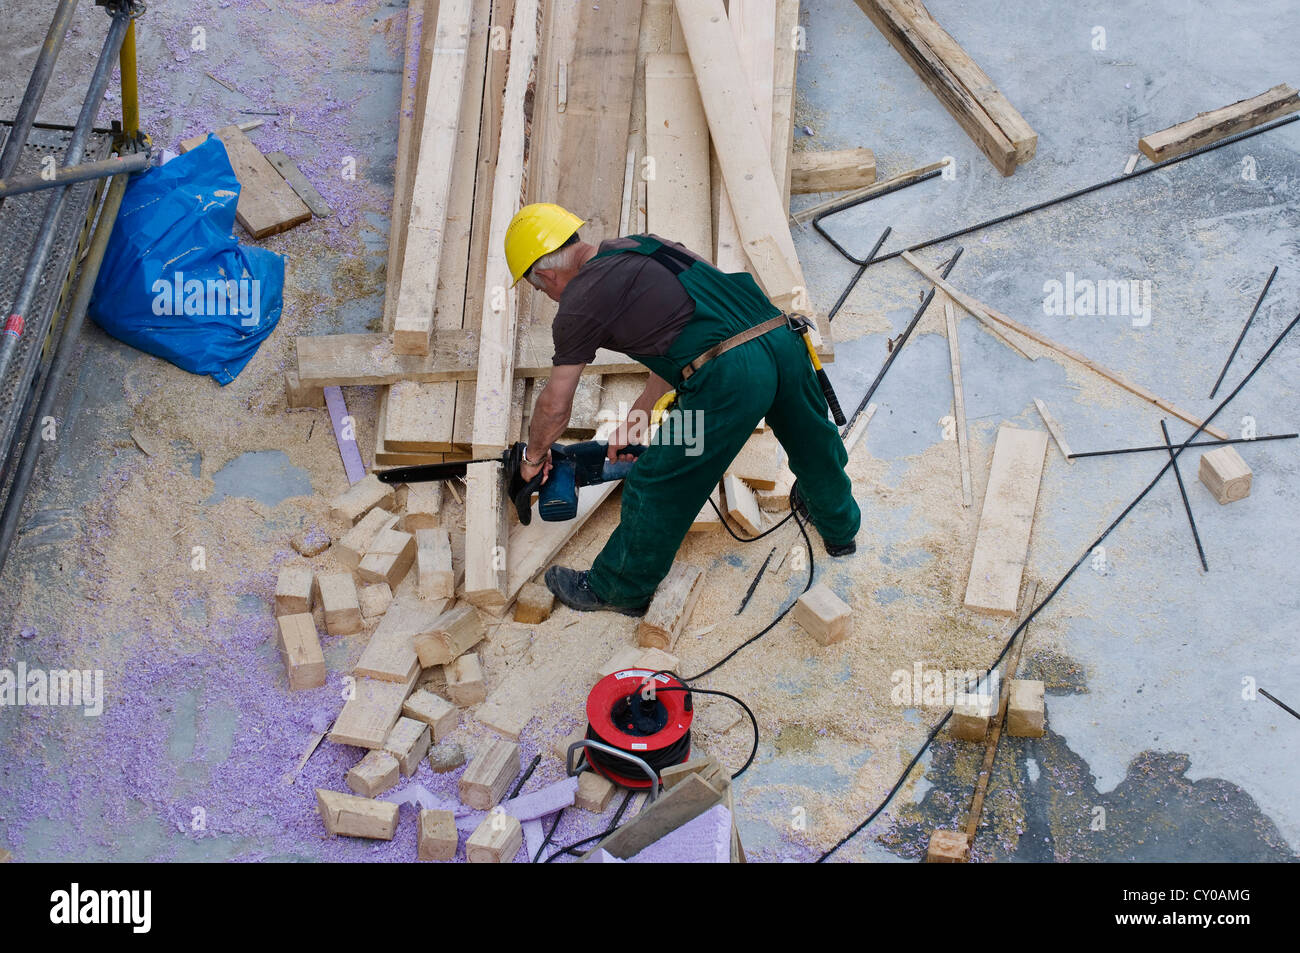 Construction worker cutting blocks of wood for boarding with a chainsaw, bird's eye perspective, PublicGround - Stock Image